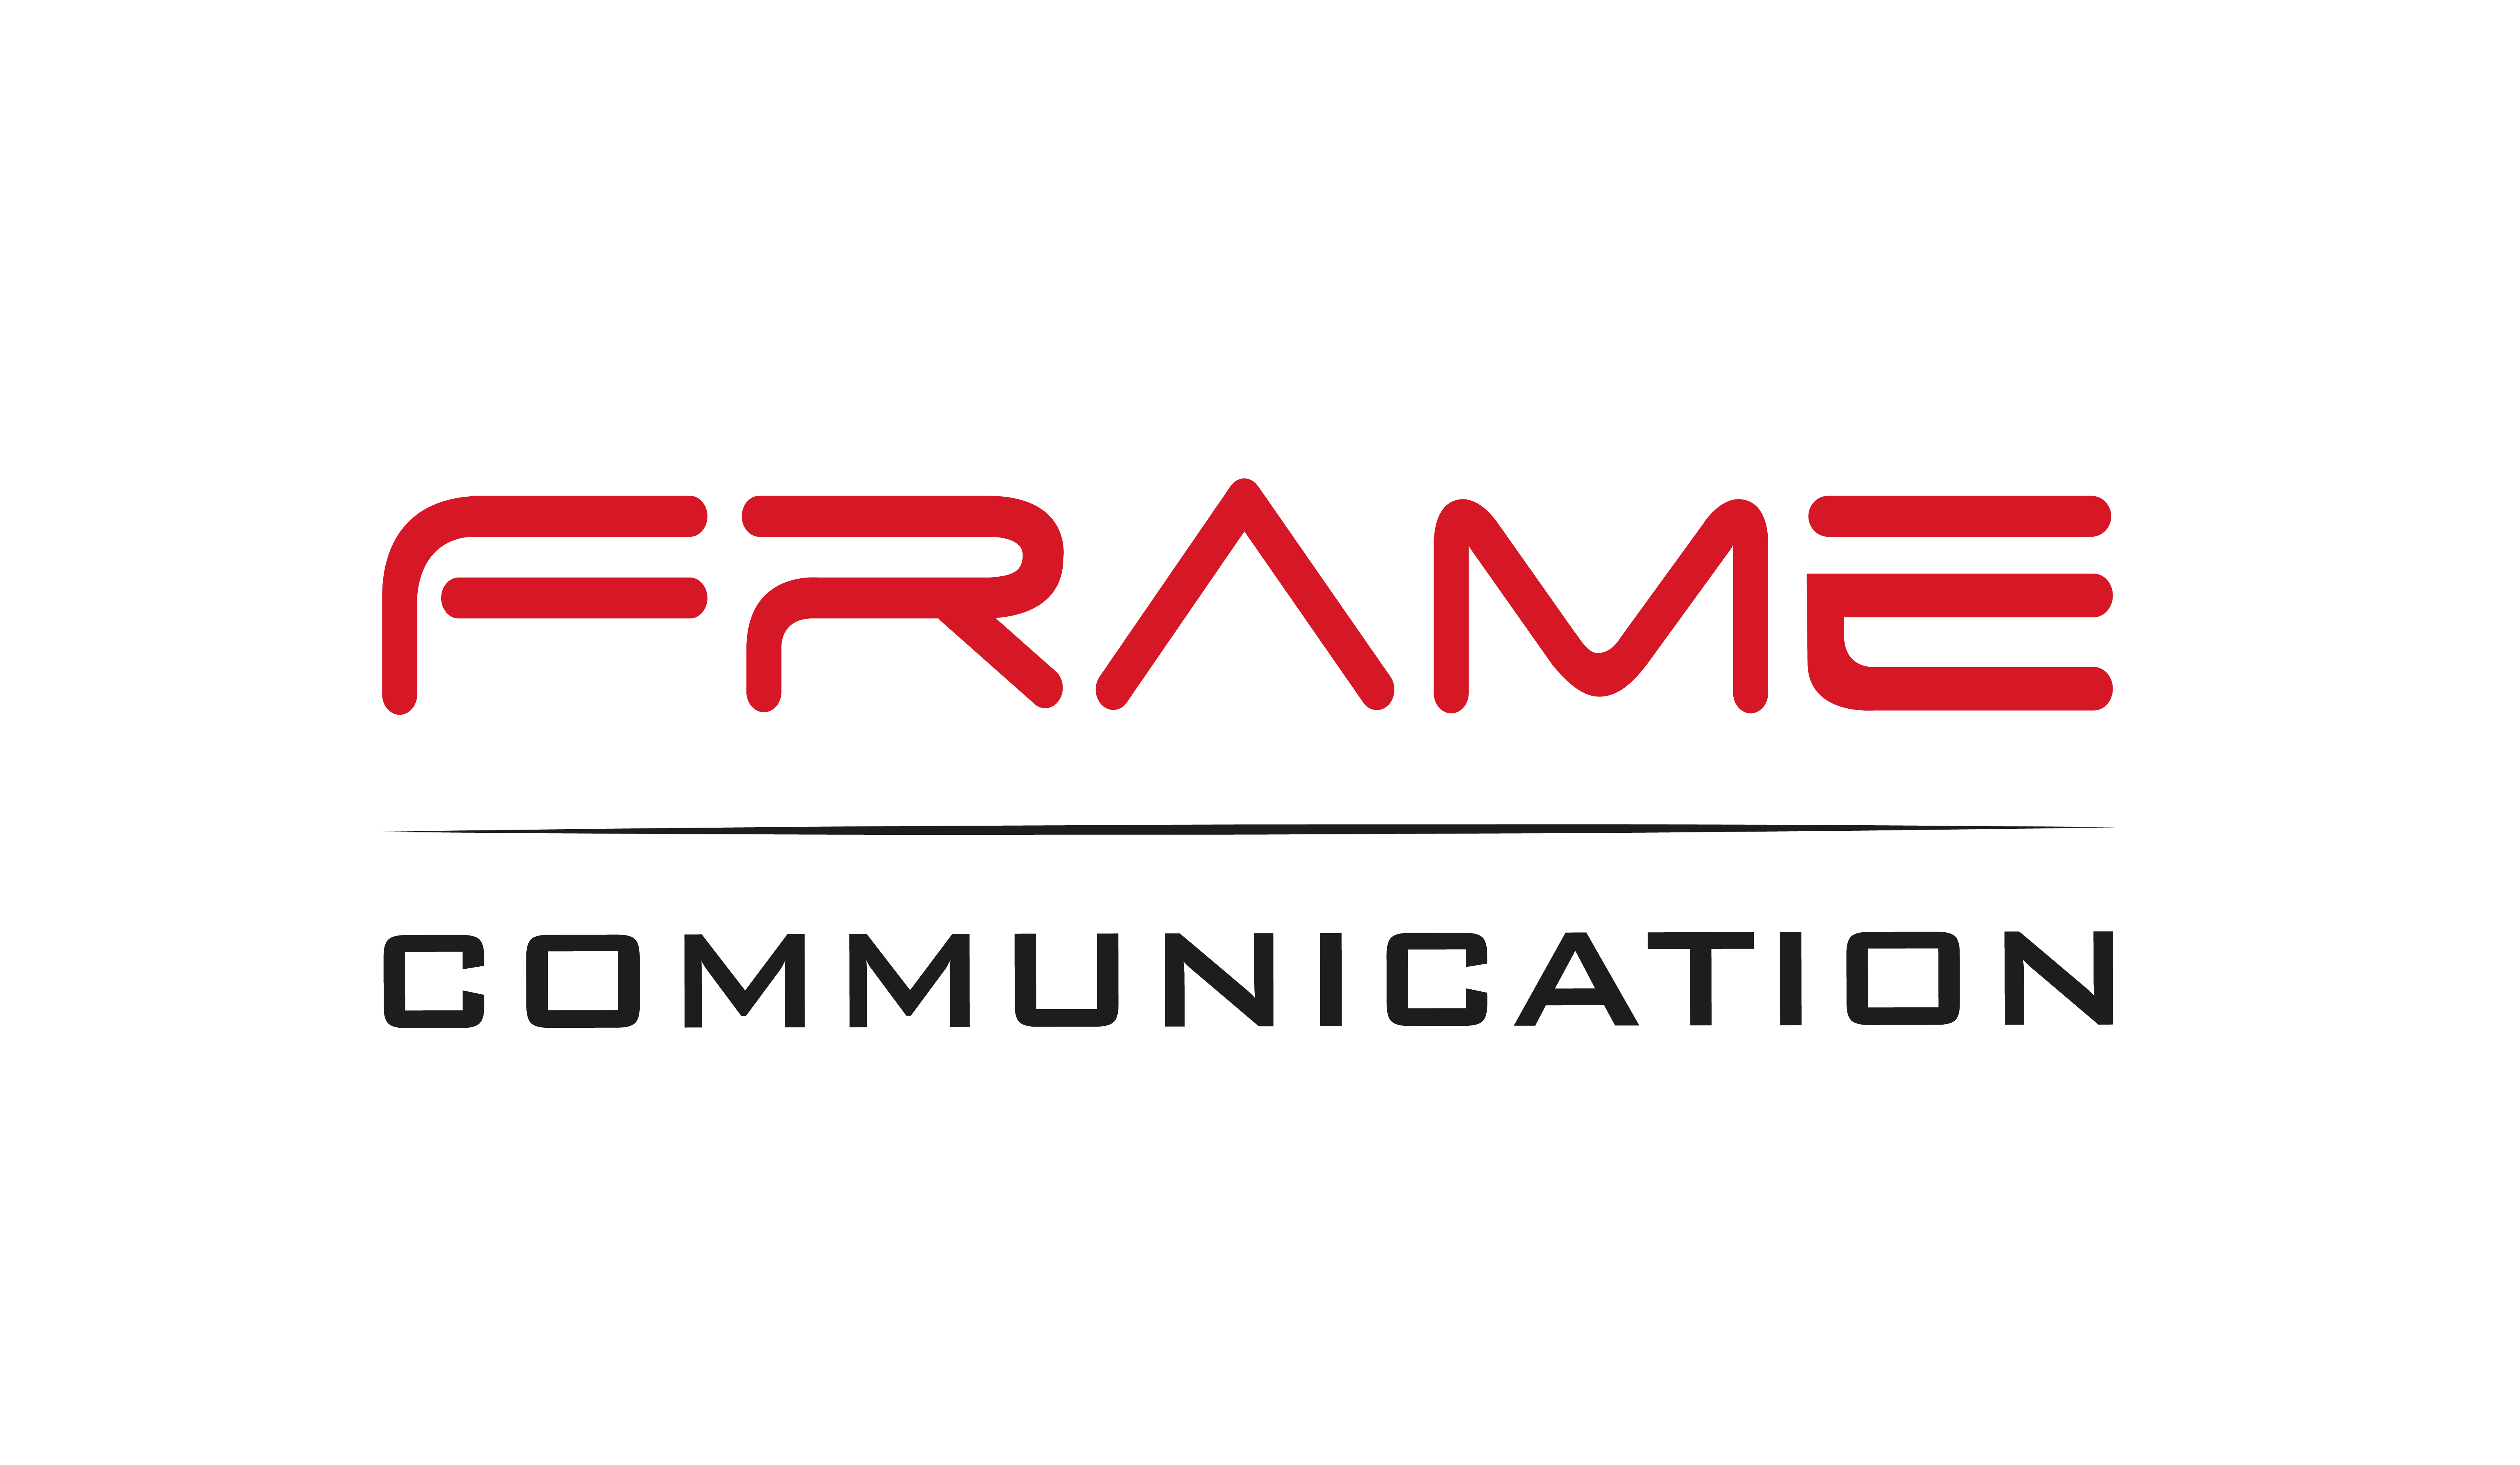 Frame Communication File Sharing